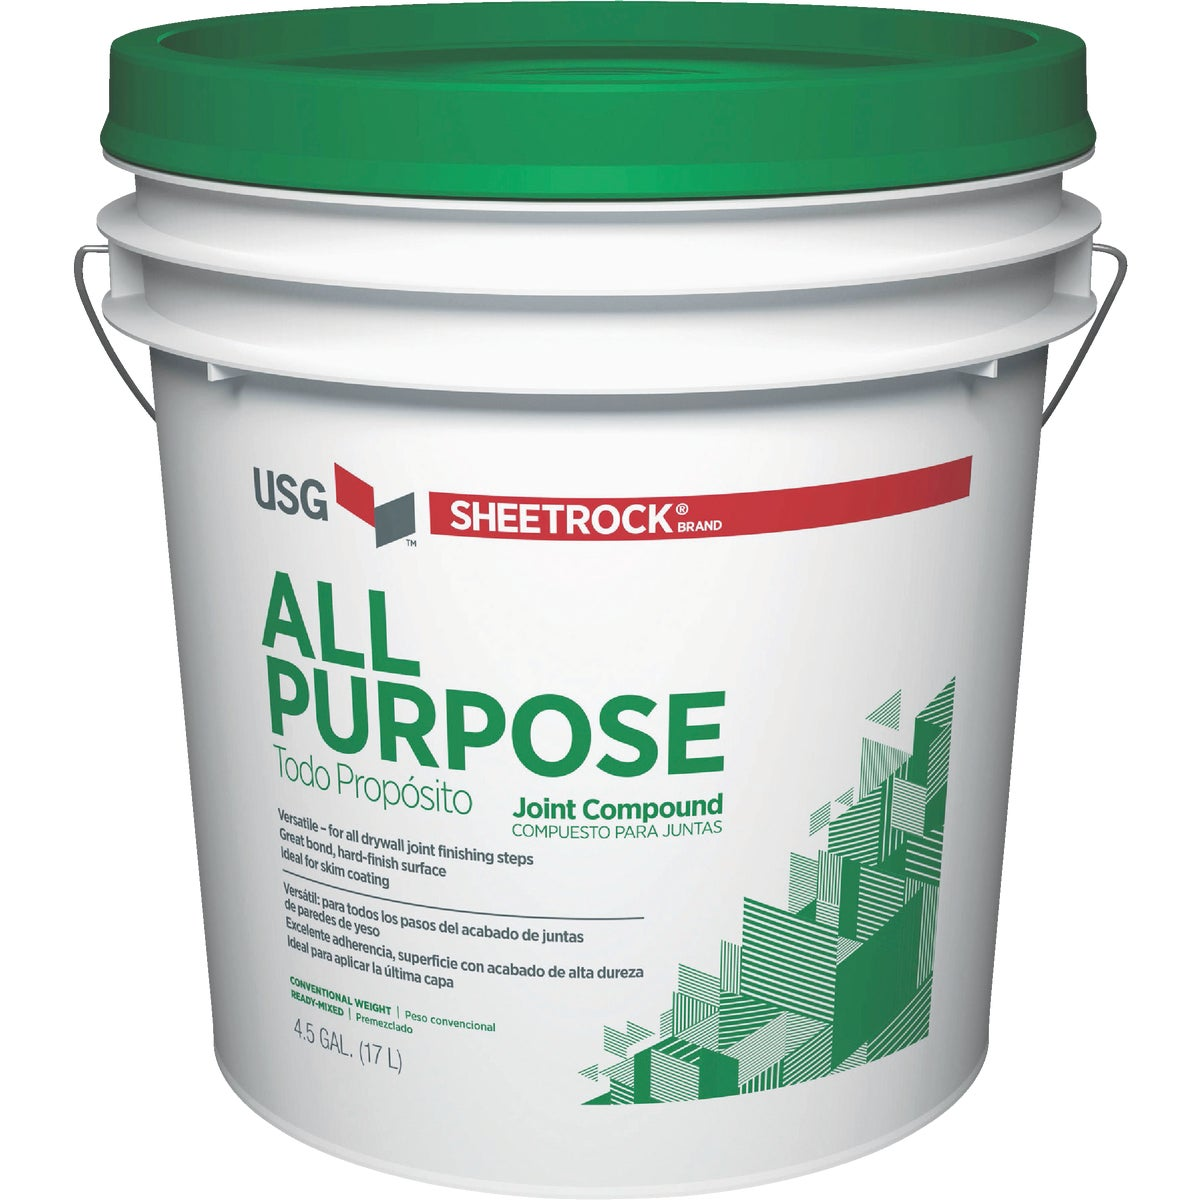 62LB PAIL JOINT COMPOUND - 380501-048 by U S Gypsum